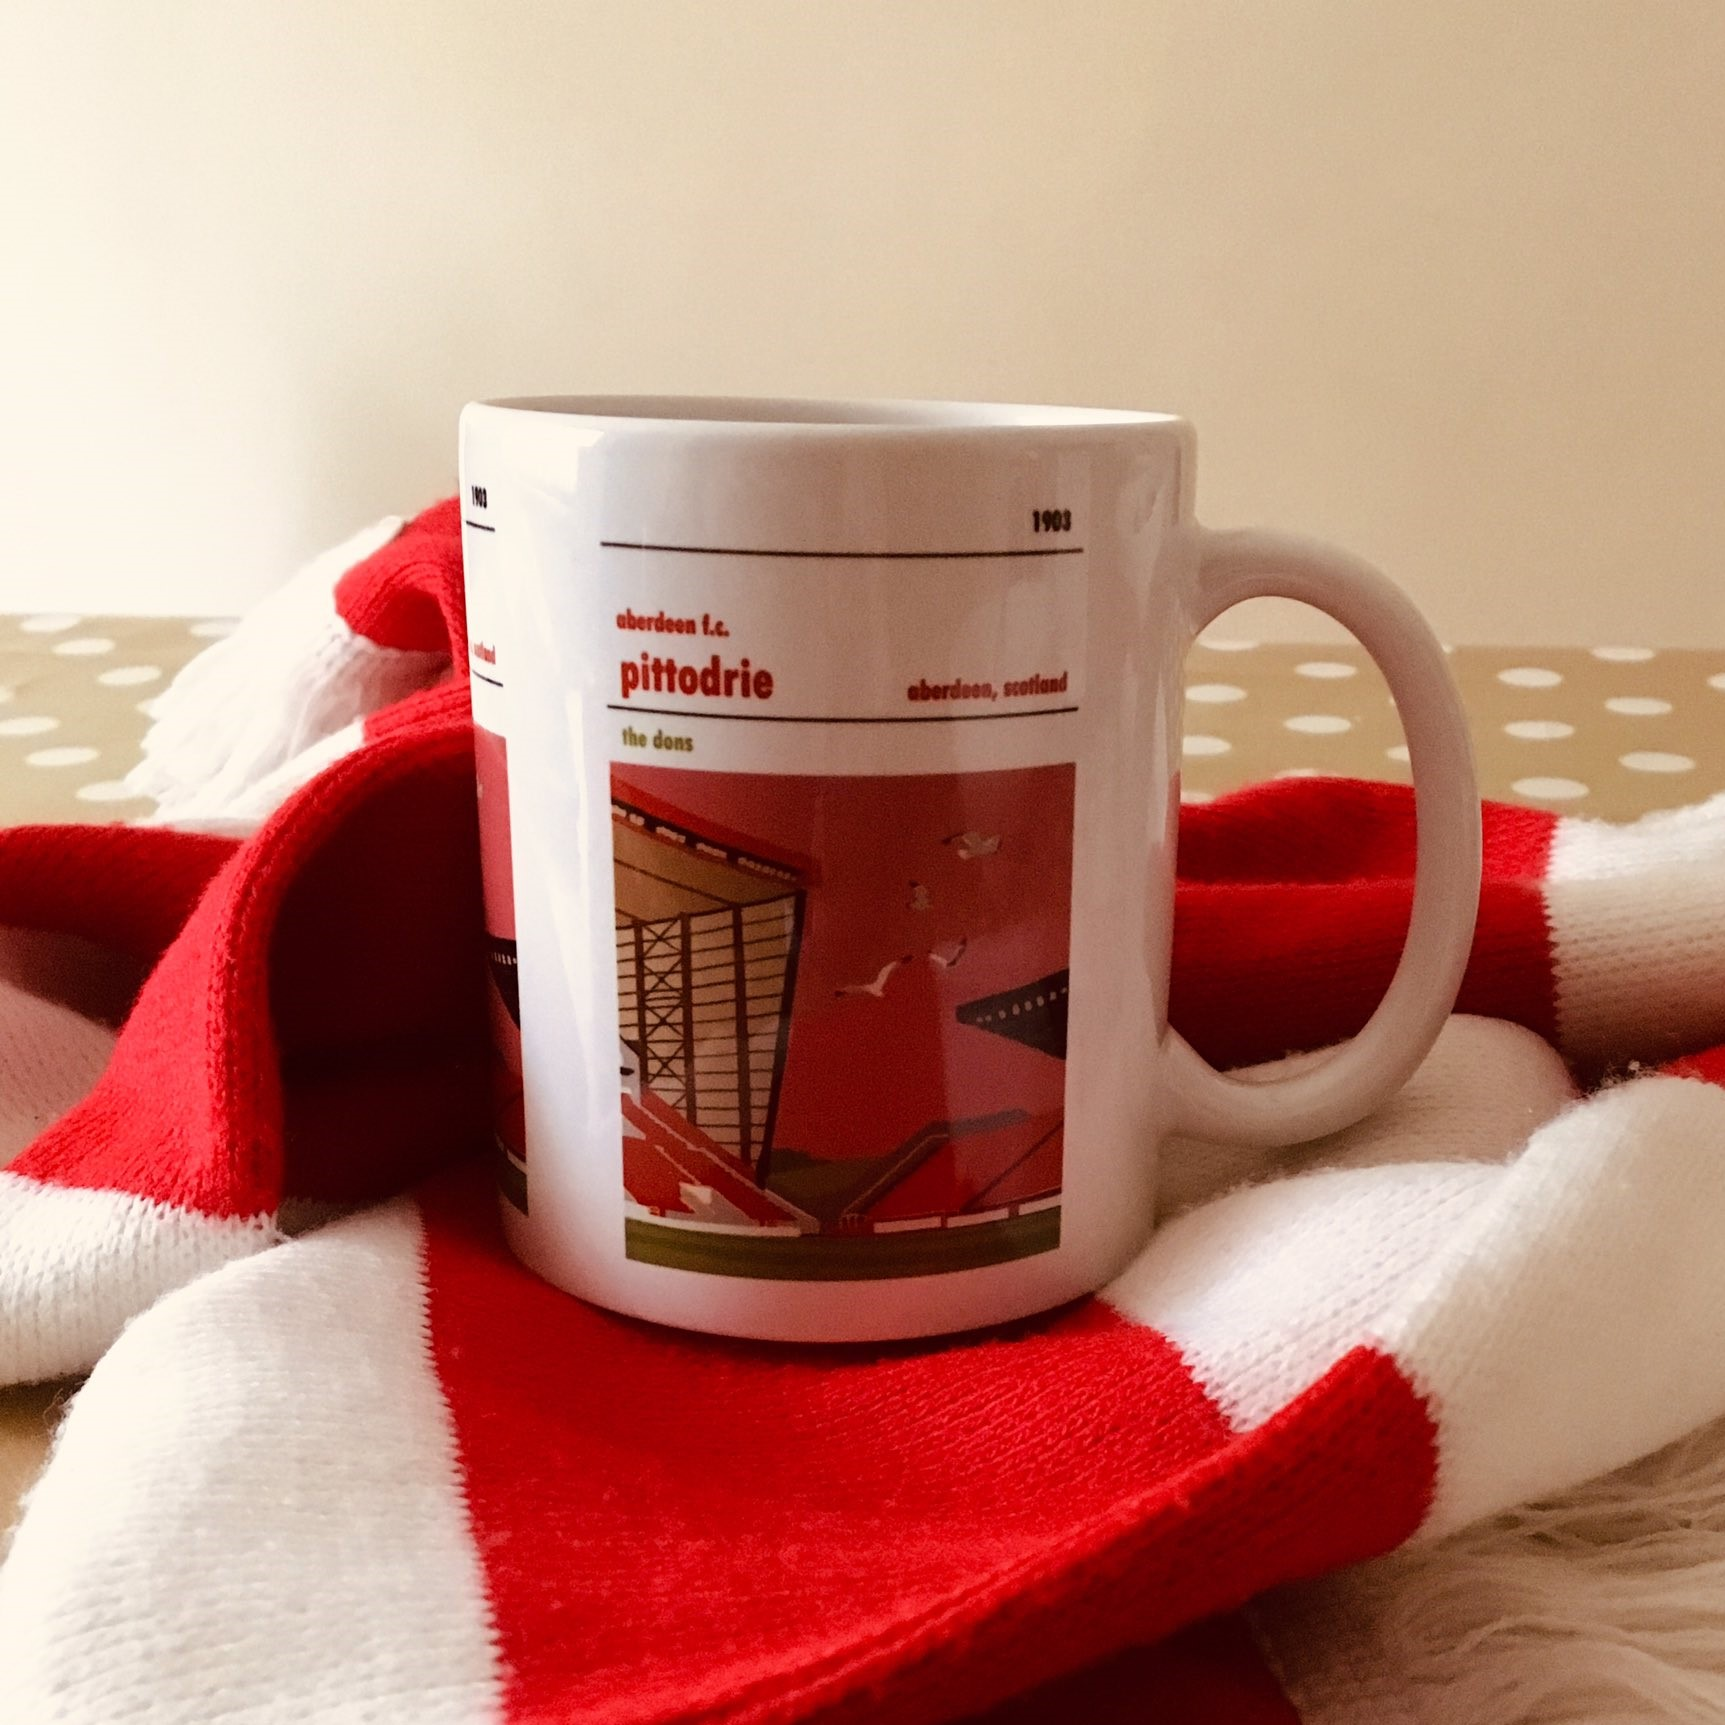 Football Mug of Pittodrie, home to Aberdeen FC